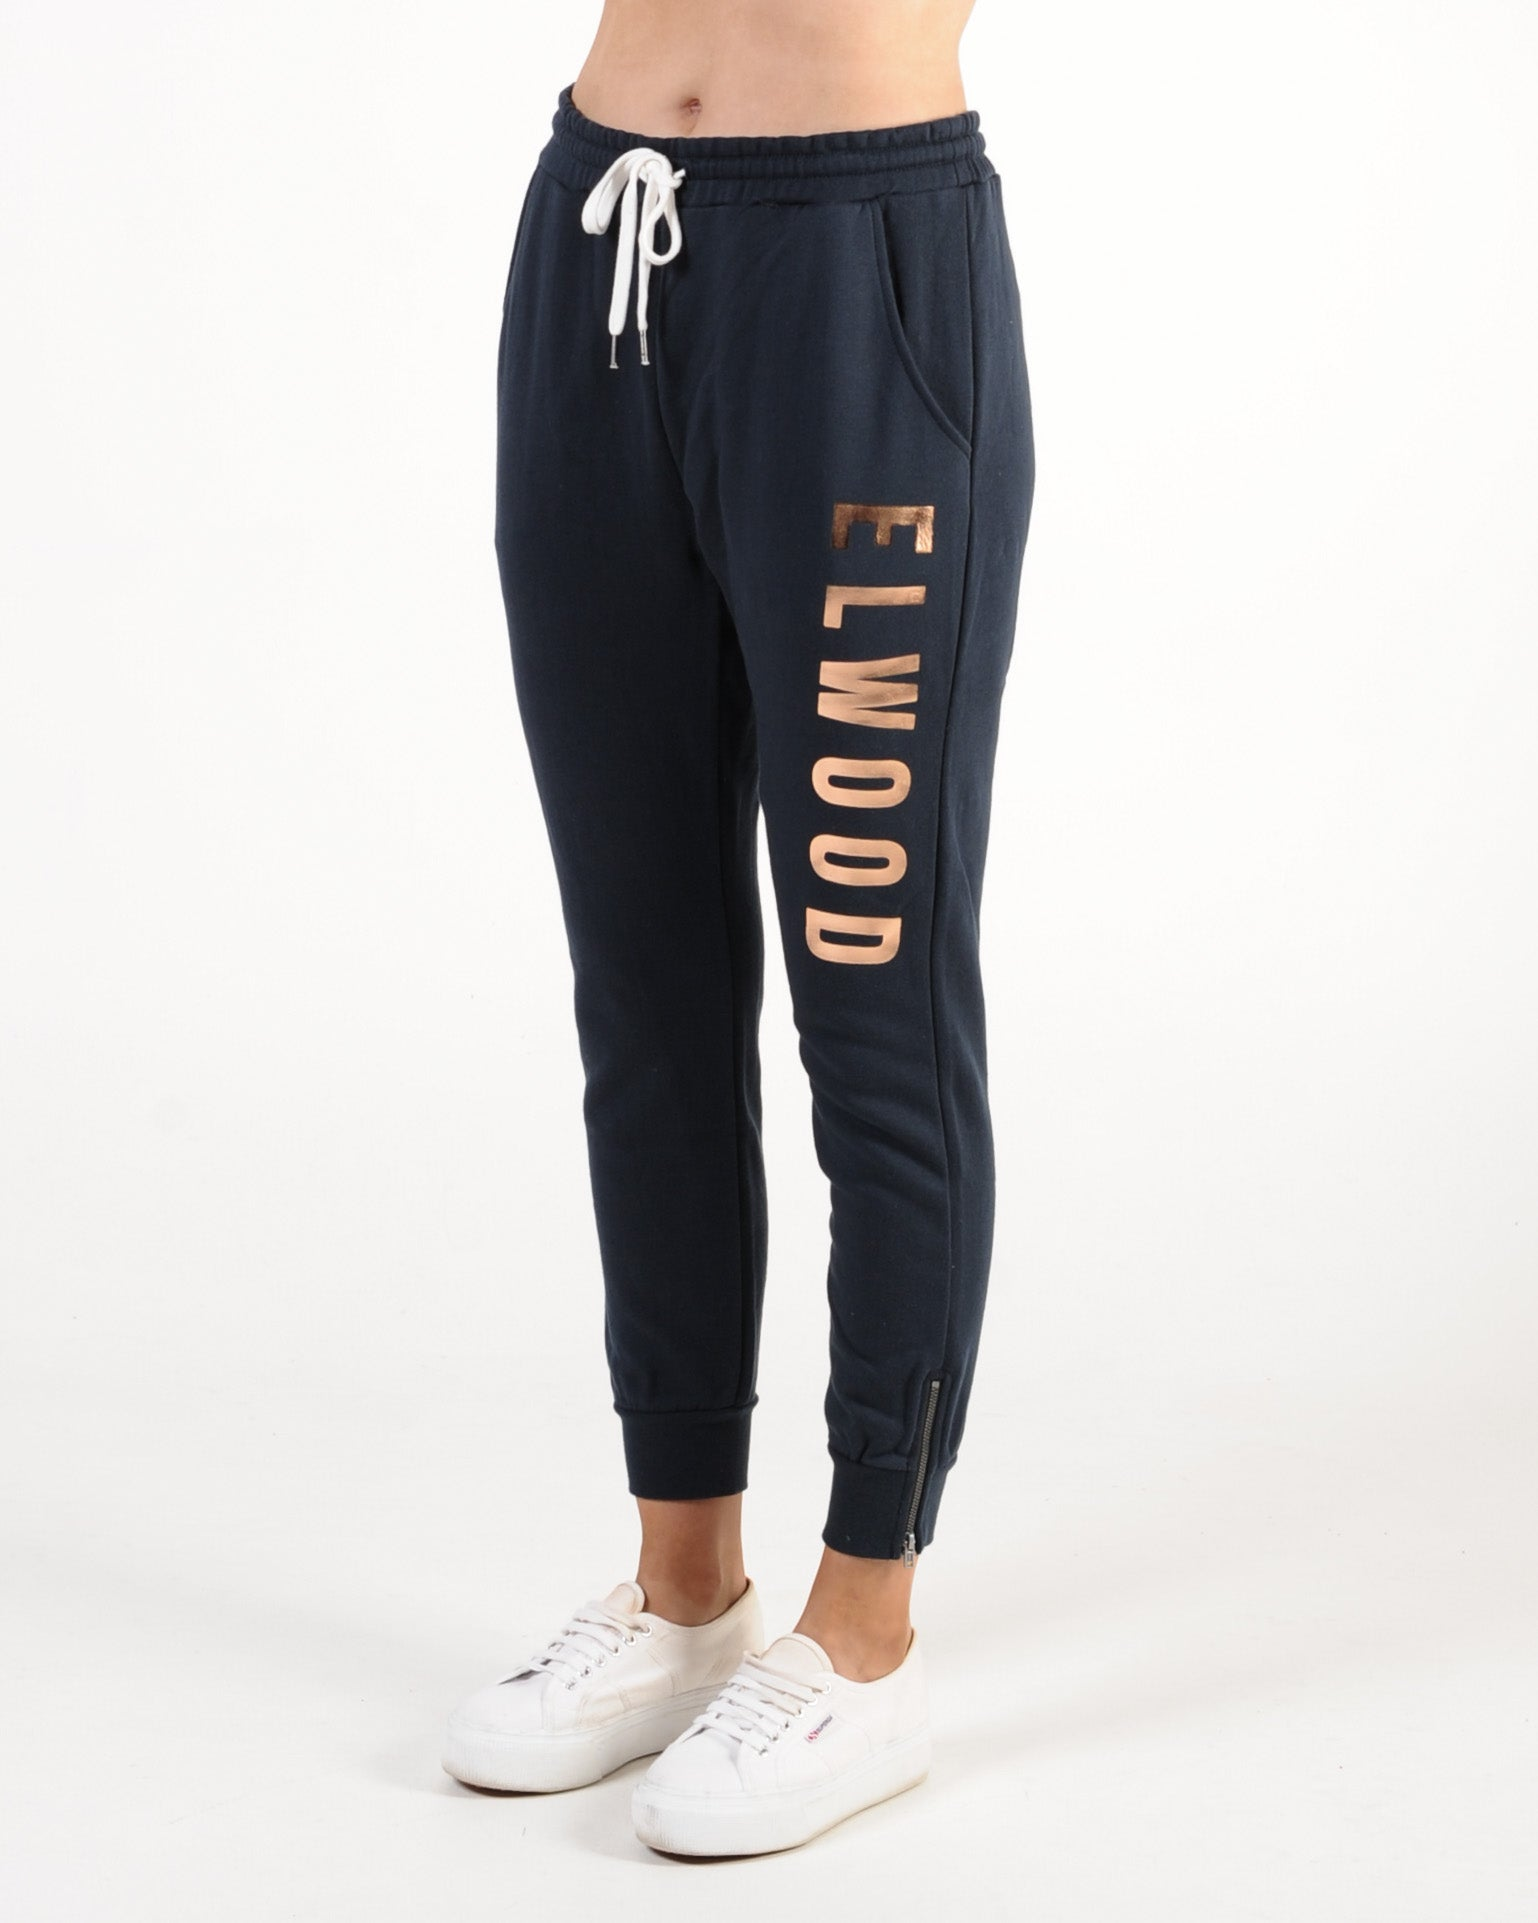 Elwood Huff N Puff Trackpant - Navy/Gold